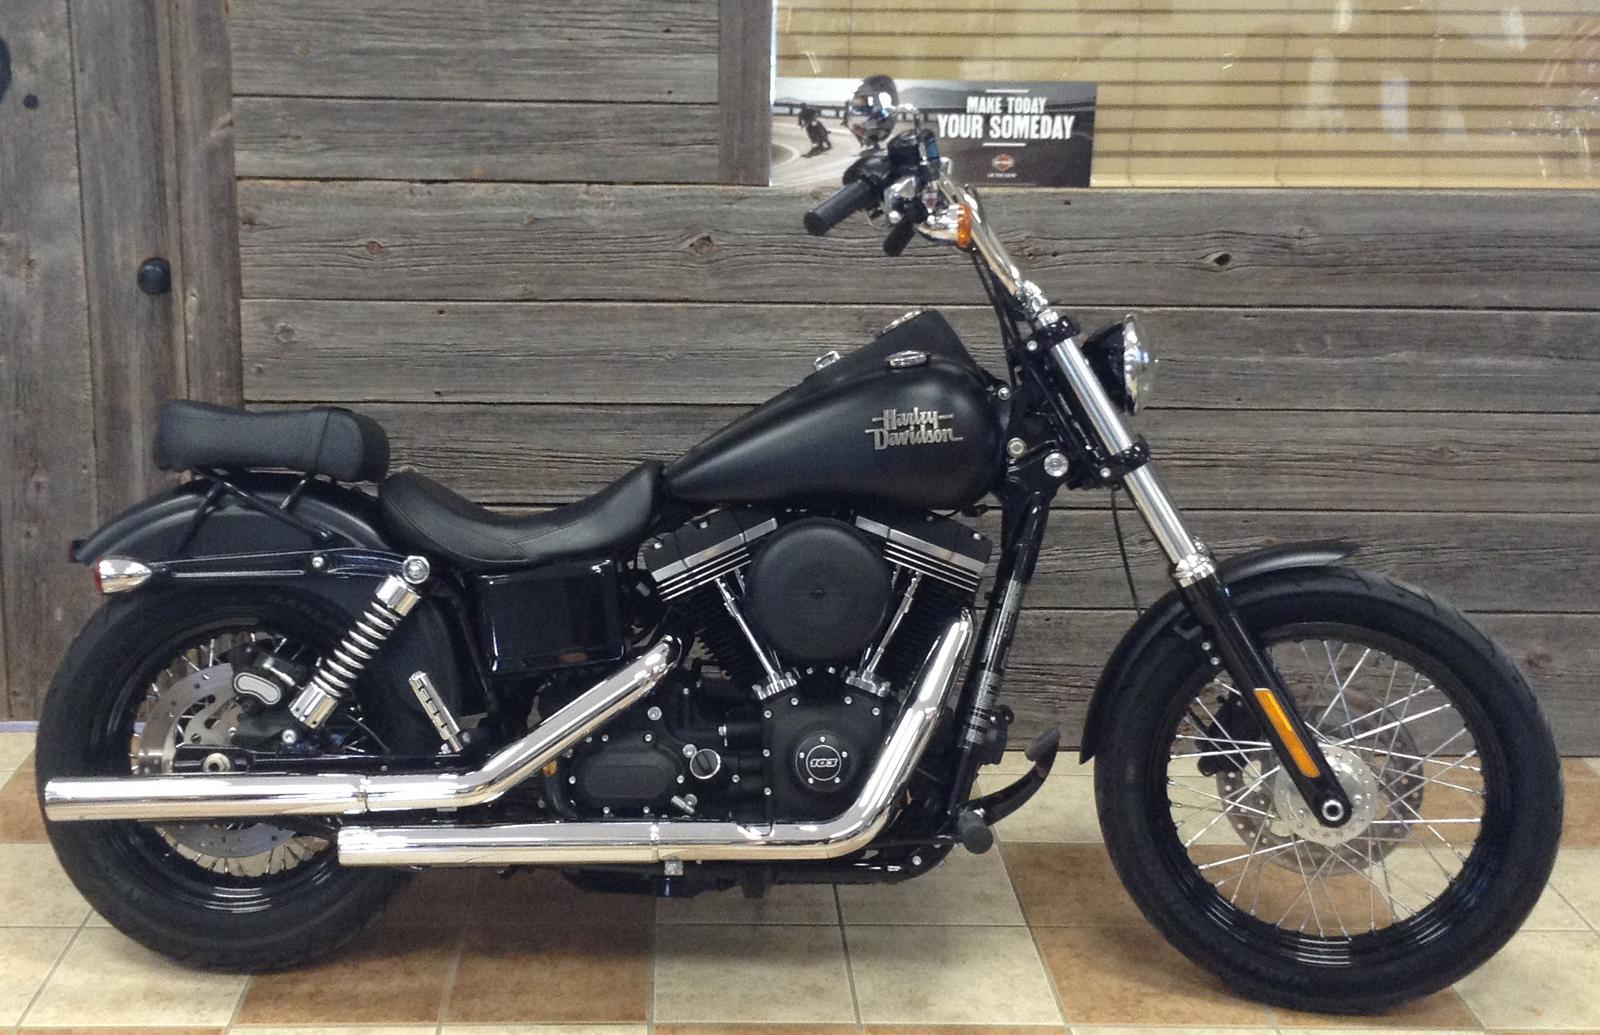 hight resolution of 2016 harley davidson fxdb street bob color option doc s harley davidson of shawano county wi